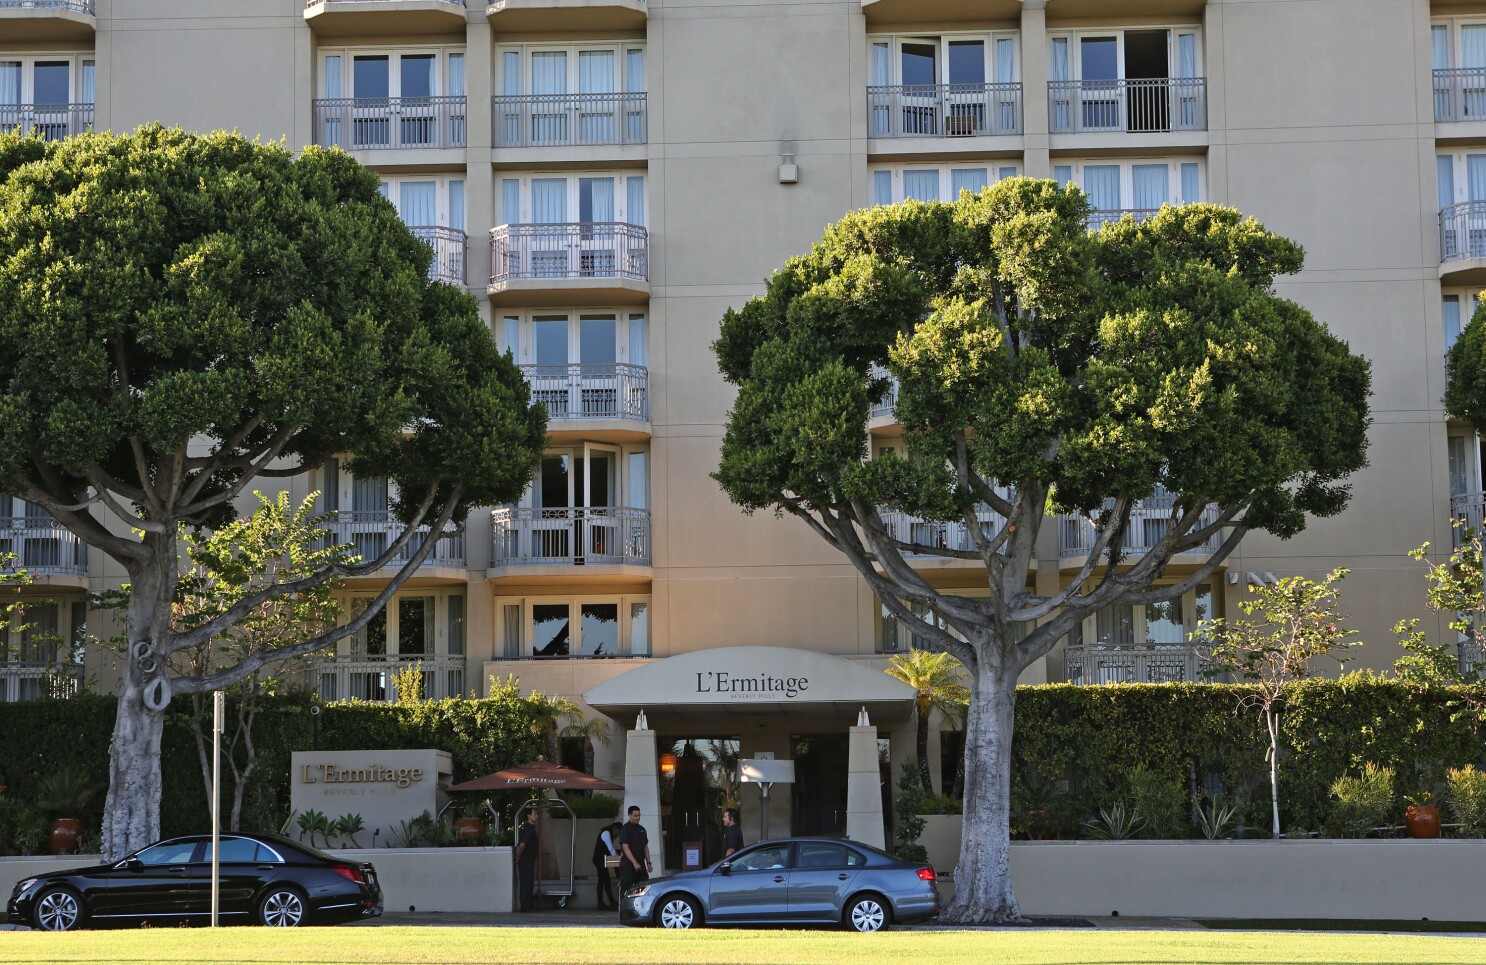 Old Hollywood's L'Ermitage hotel selling for $100 million - Los Angeles  Times